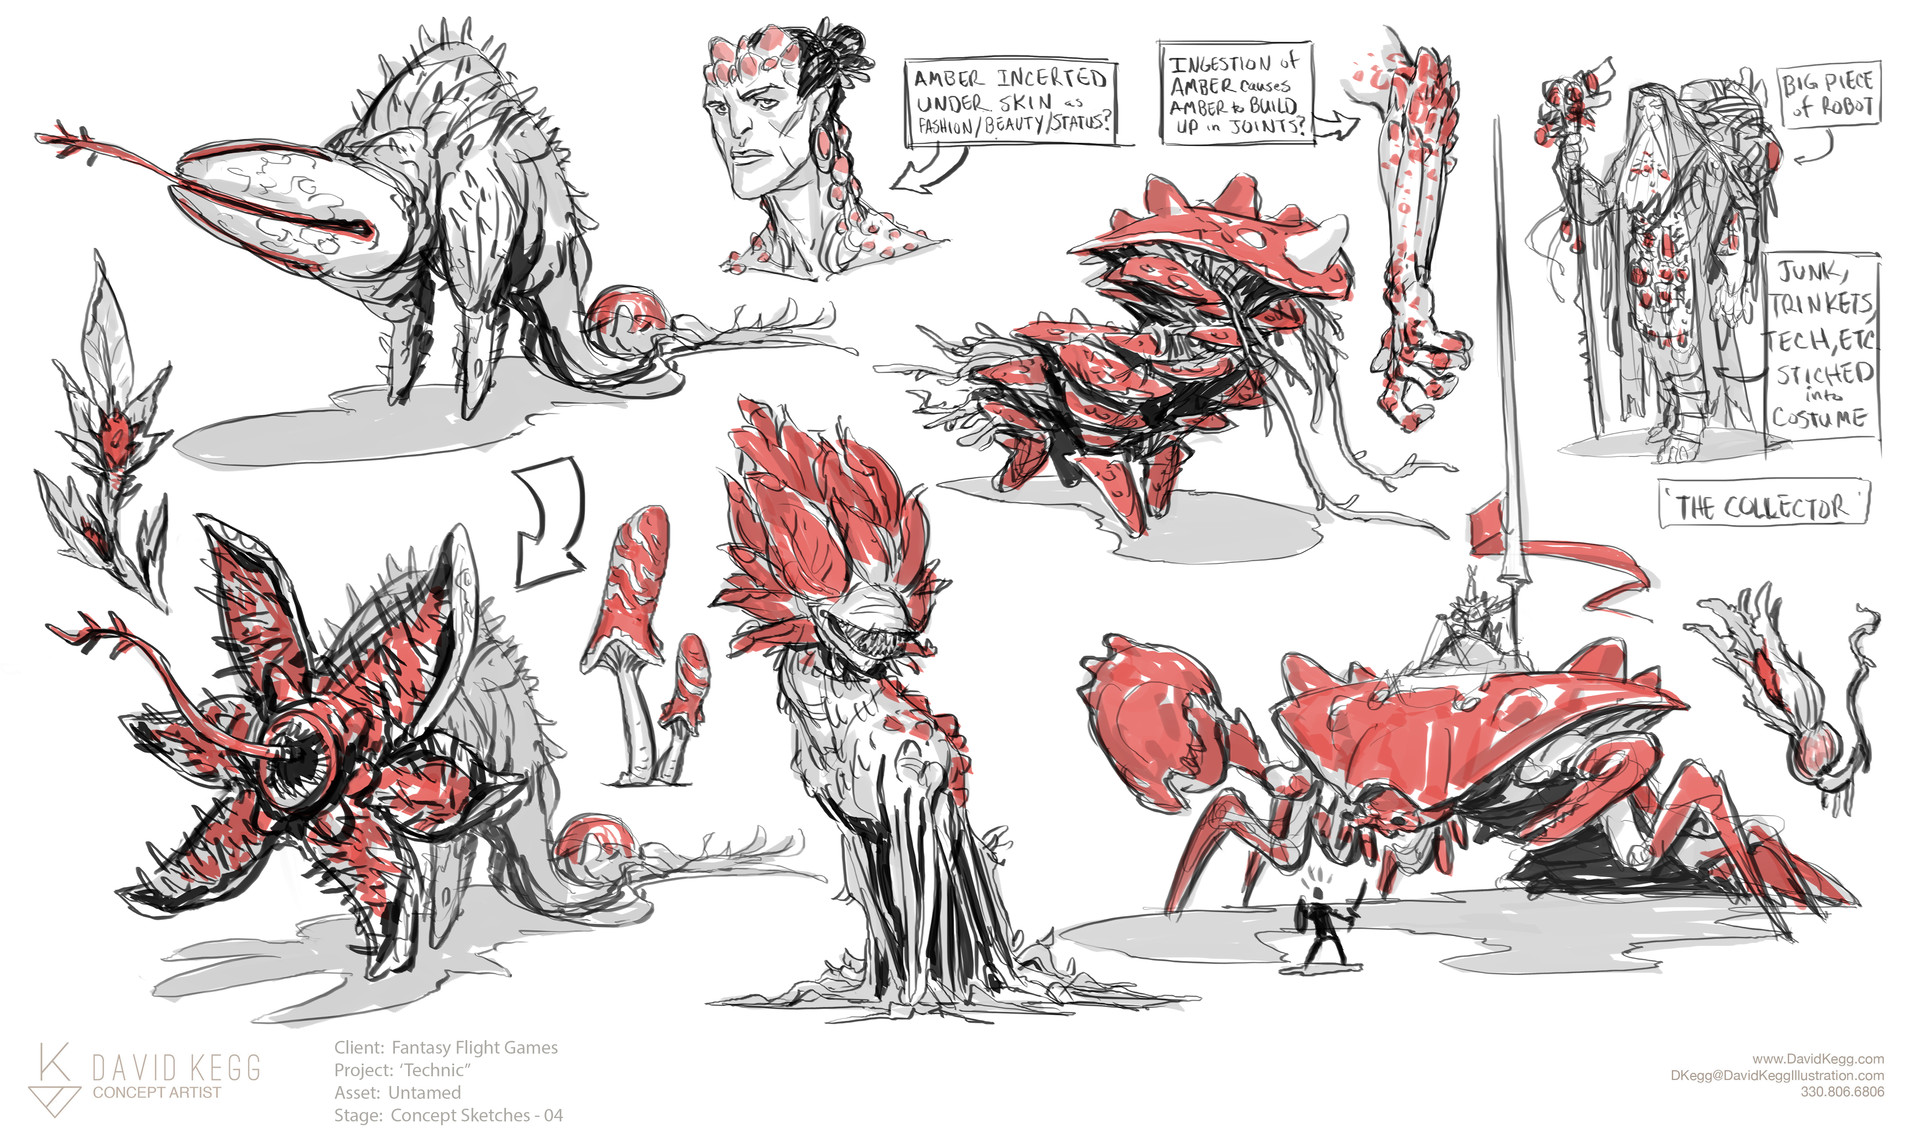 David kegg kegg ffgtechnic untamed conceptsketches 04